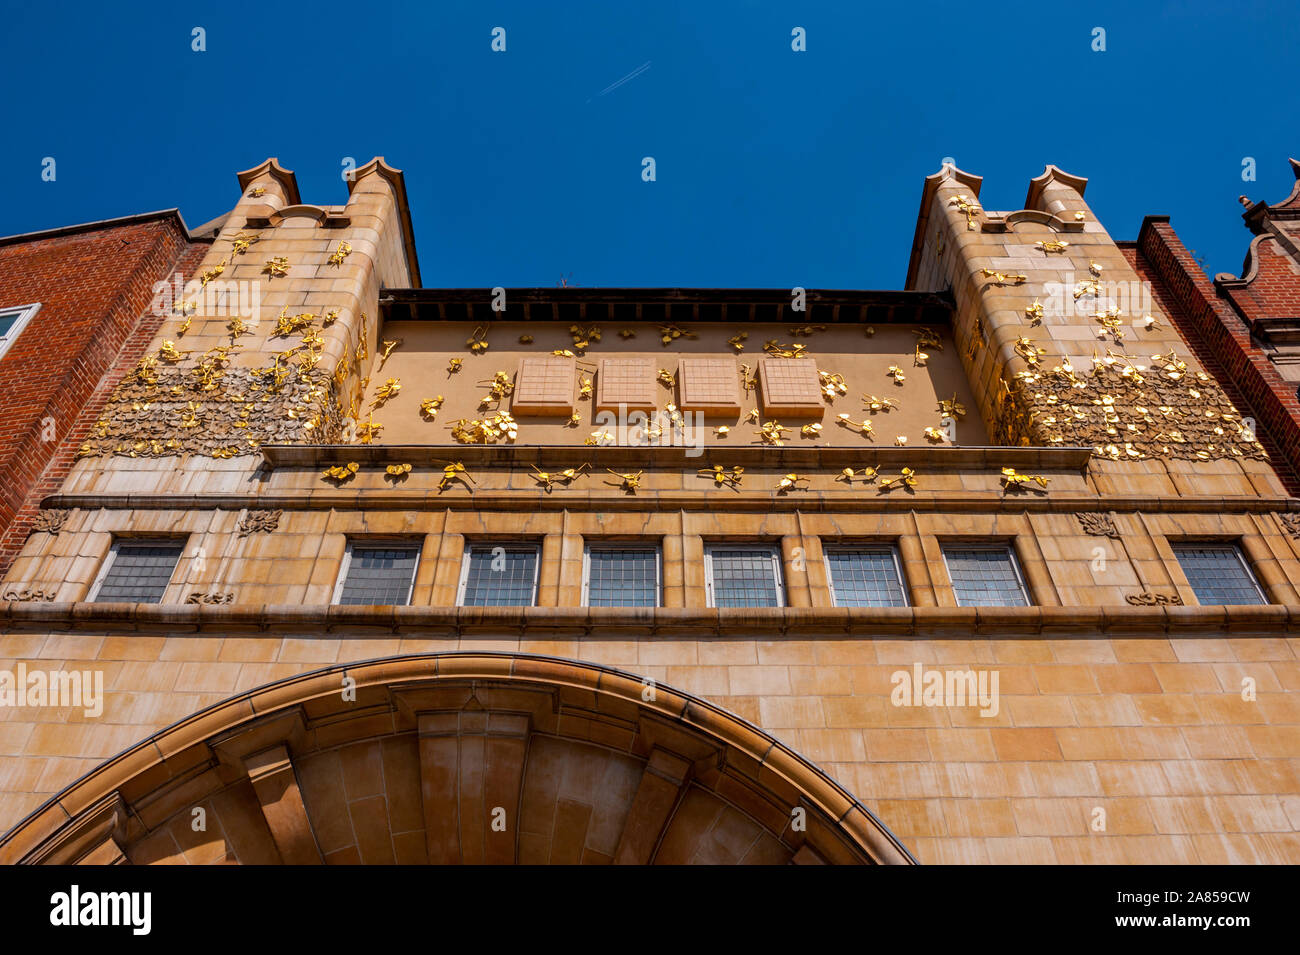 Looking up at the Art Nouveau frontage of the Whitechapel gallery London Stock Photo